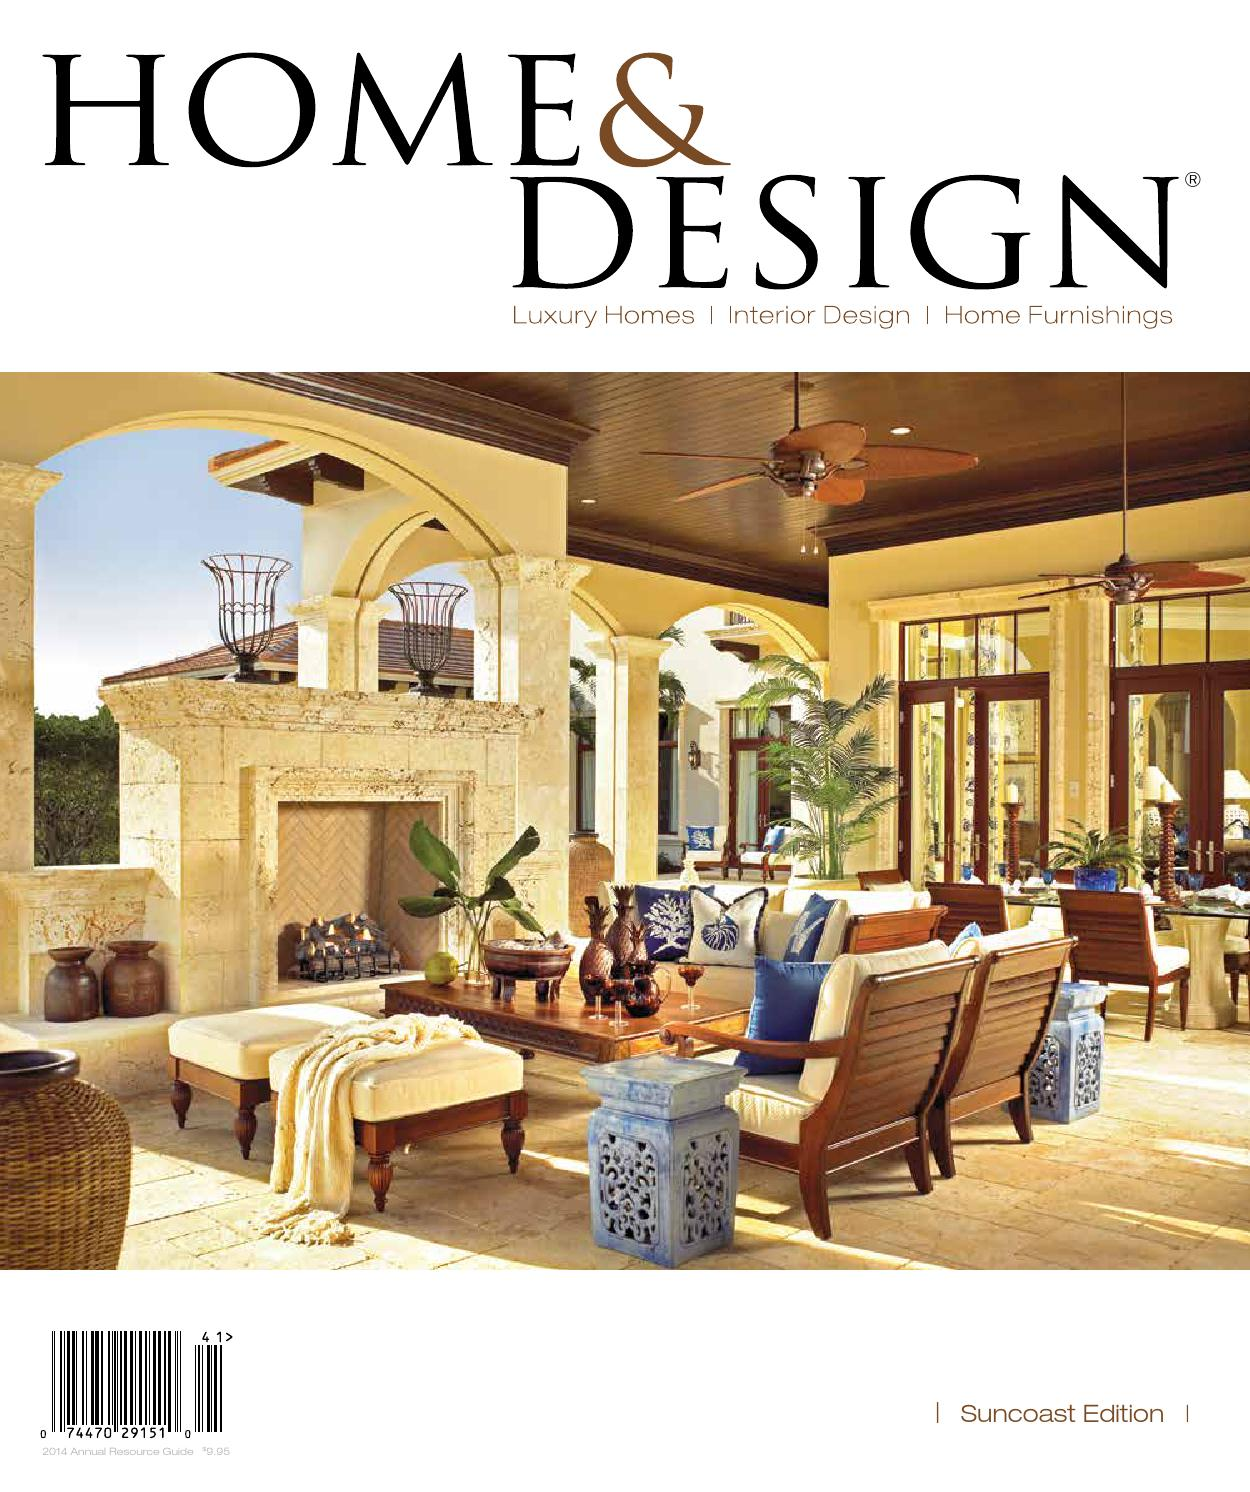 Home U0026 Design Magazine | Annual Resource Guide 2014 | Suncoast Florida  Edition By Anthony Spano   Issuu